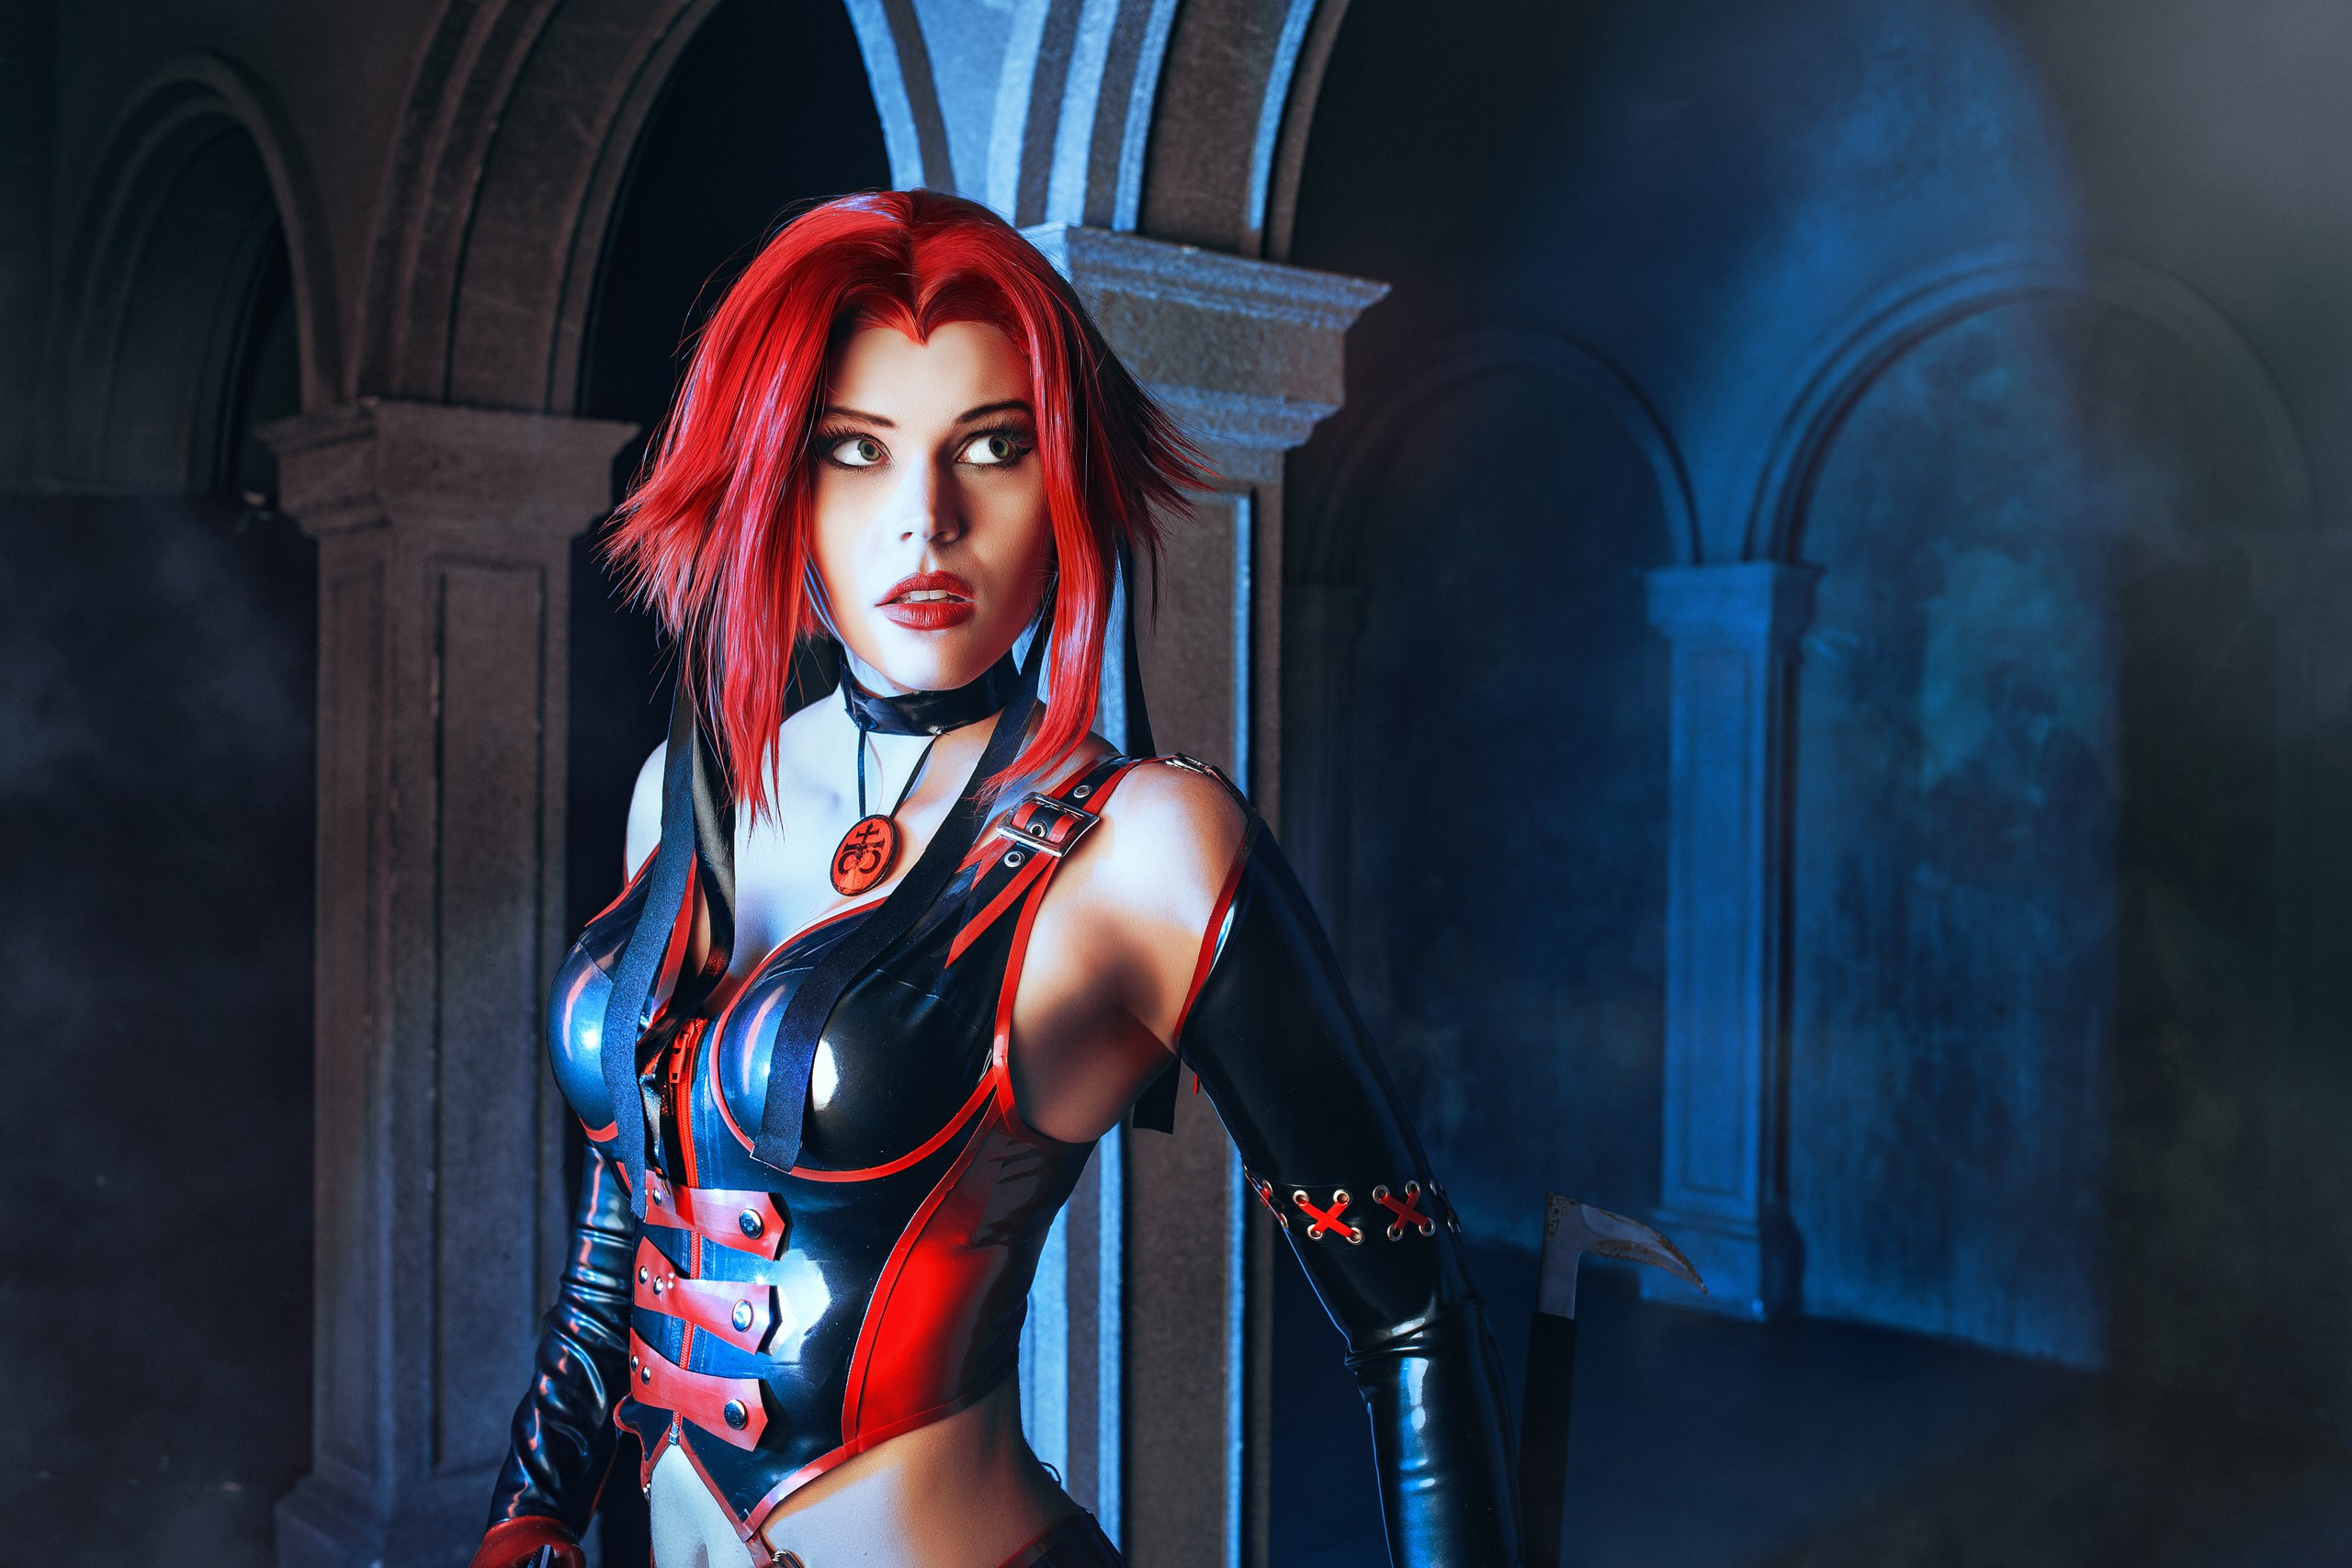 Bloodrayne titfuck sex videos